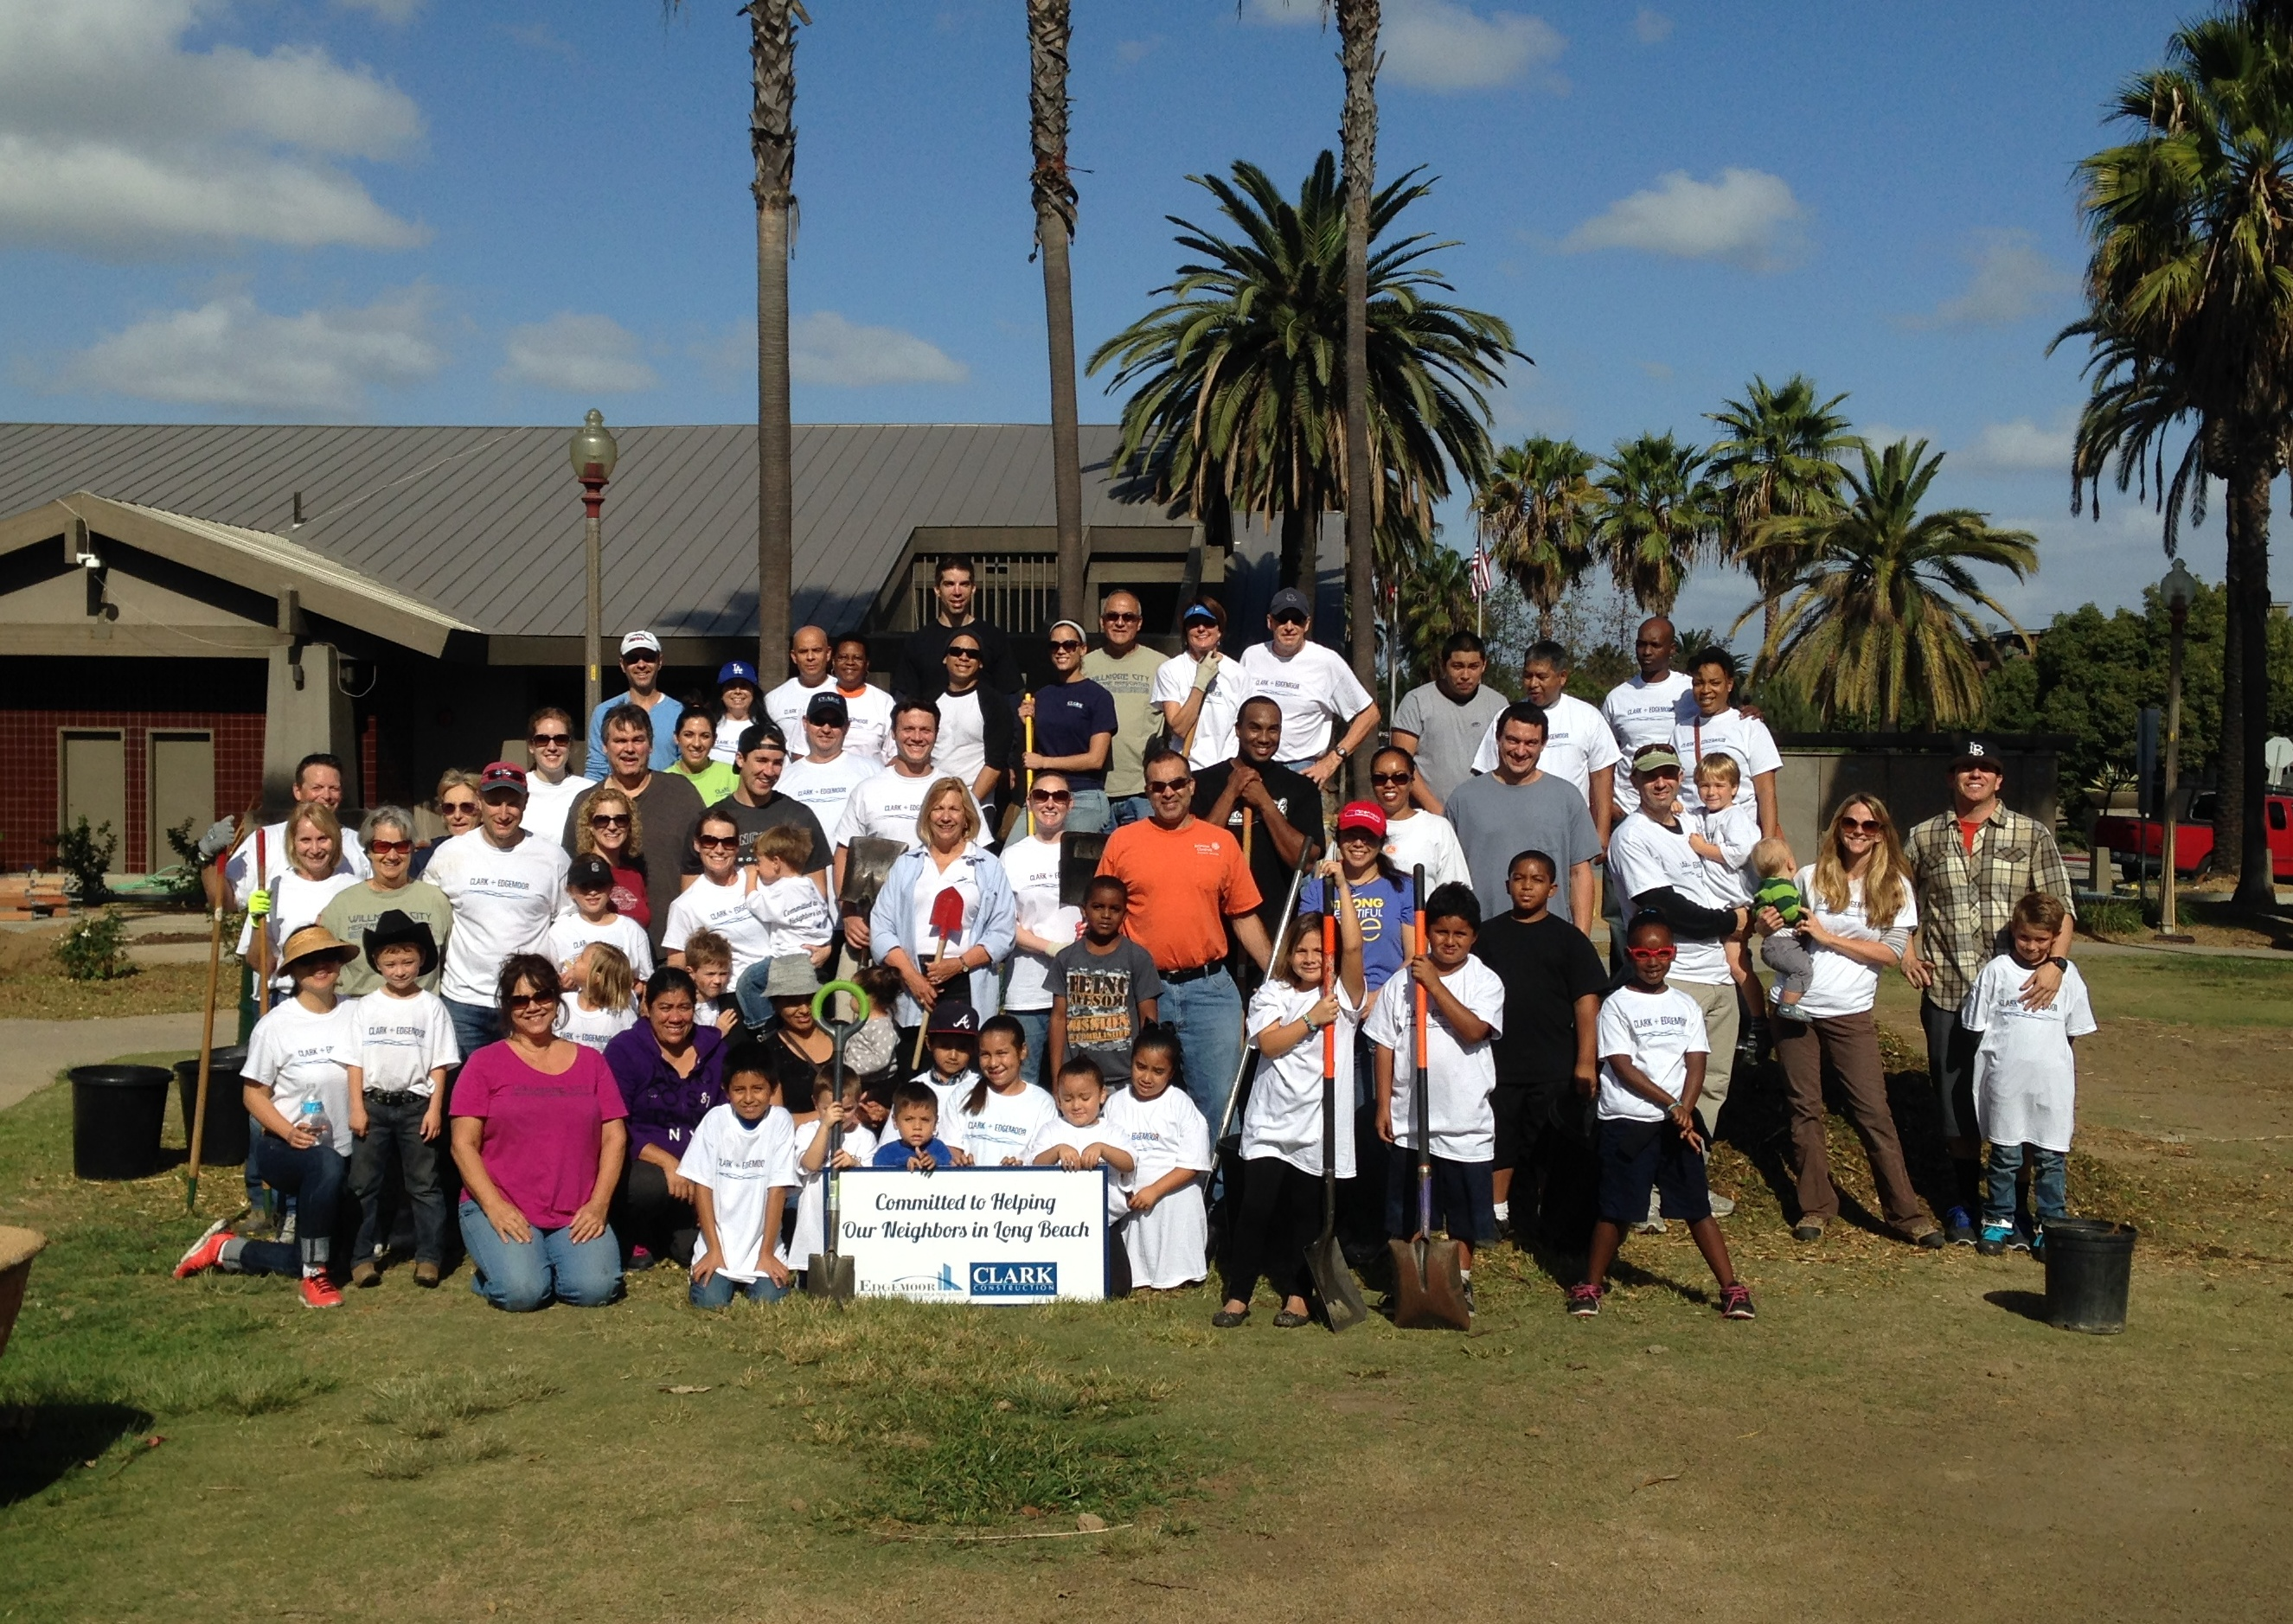 On November 16, Edgemoor and Clark Construction teamed up with our neighbors in Long Beach, California for a worthwhile cause.